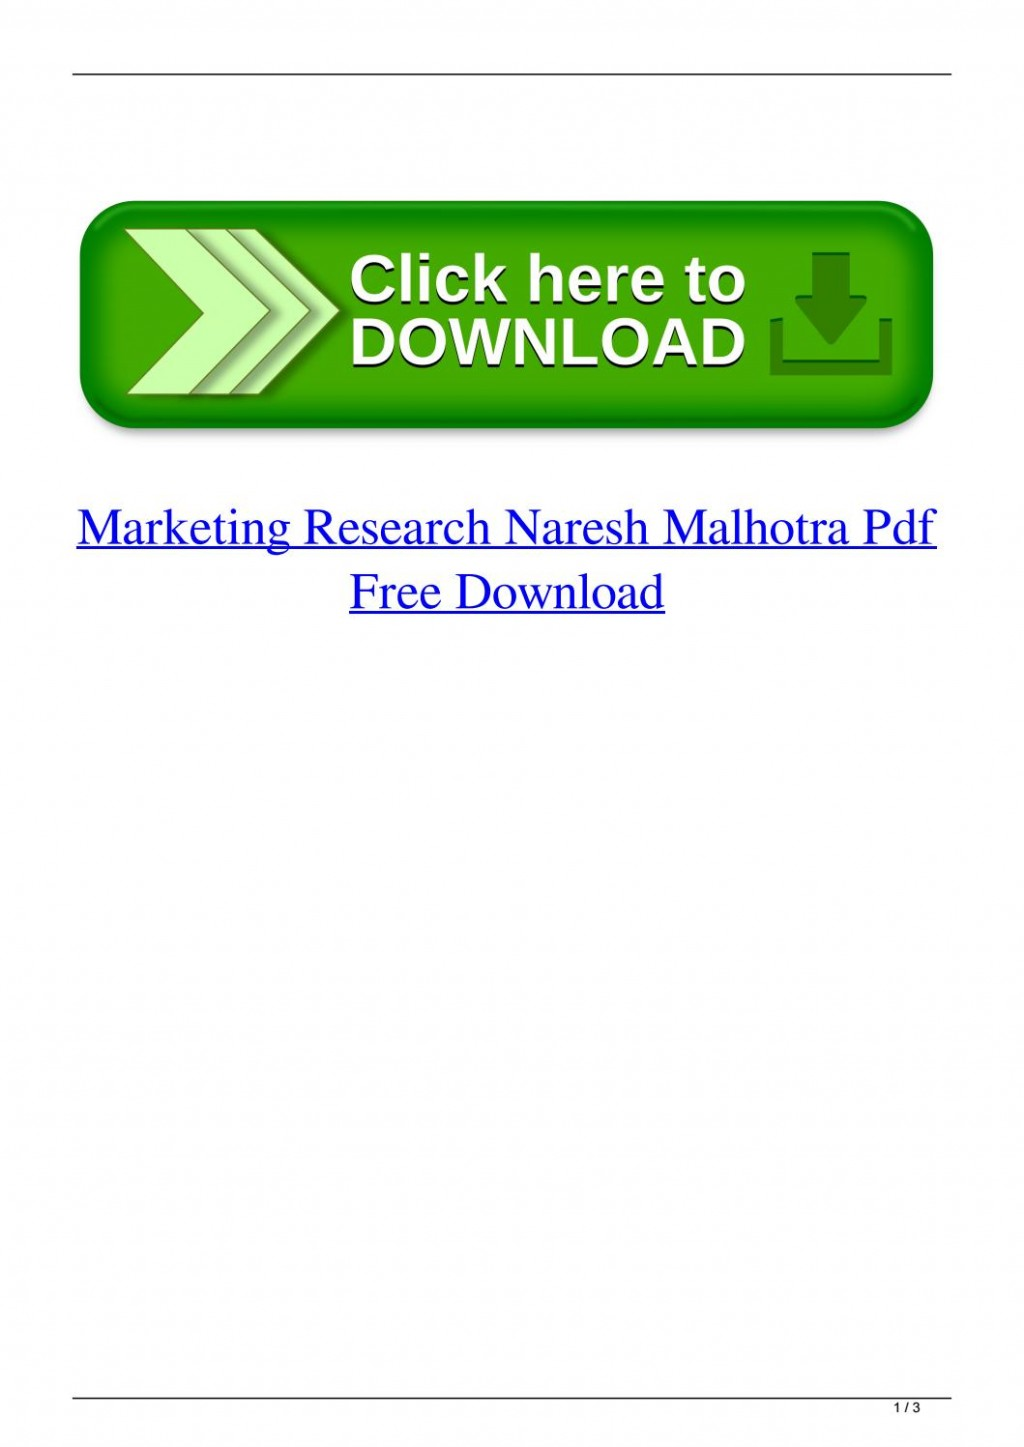 011 Research Paper Page 1 Marketing Papers Pdf Free Impressive Download Large